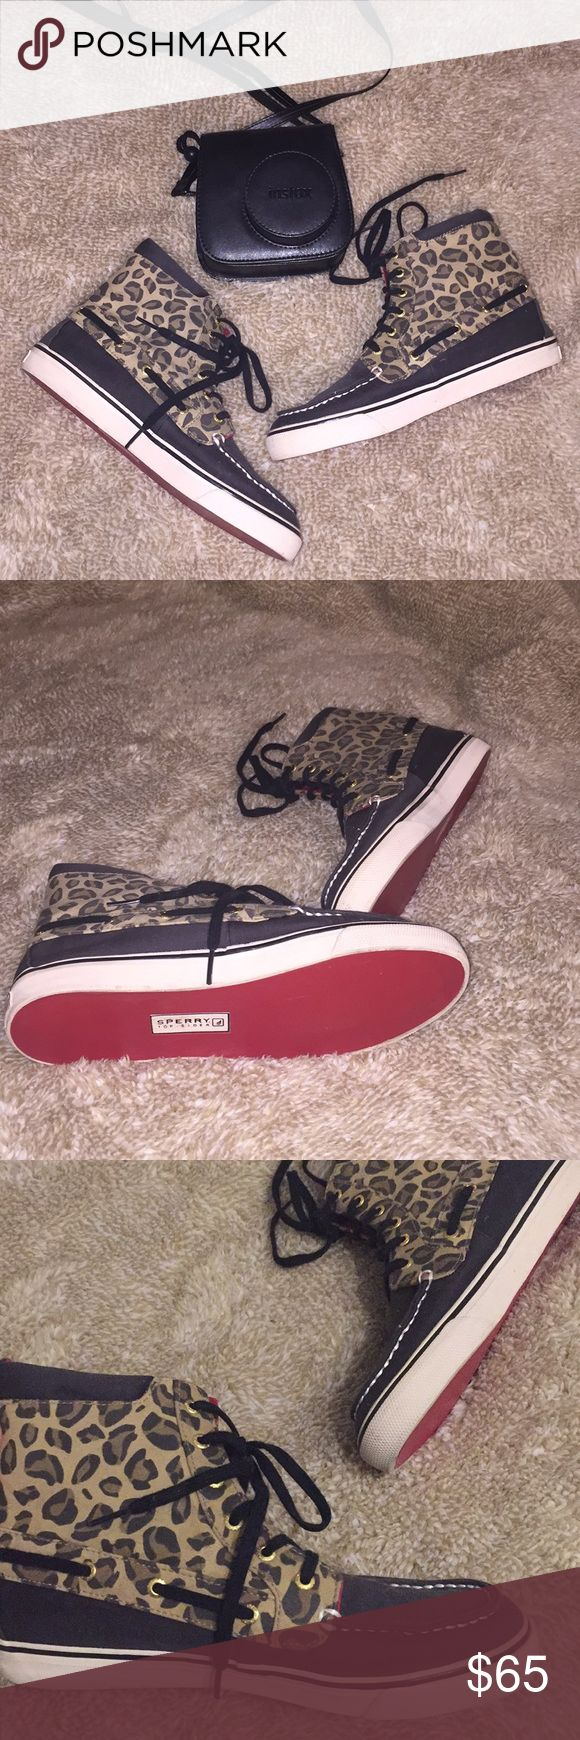 SPERRY HIGH TOPS❤️ Like new, worn minimally cheetah sperry high tops with red bottoms and inside :) Sperry Top-Sider Shoes Sneakers